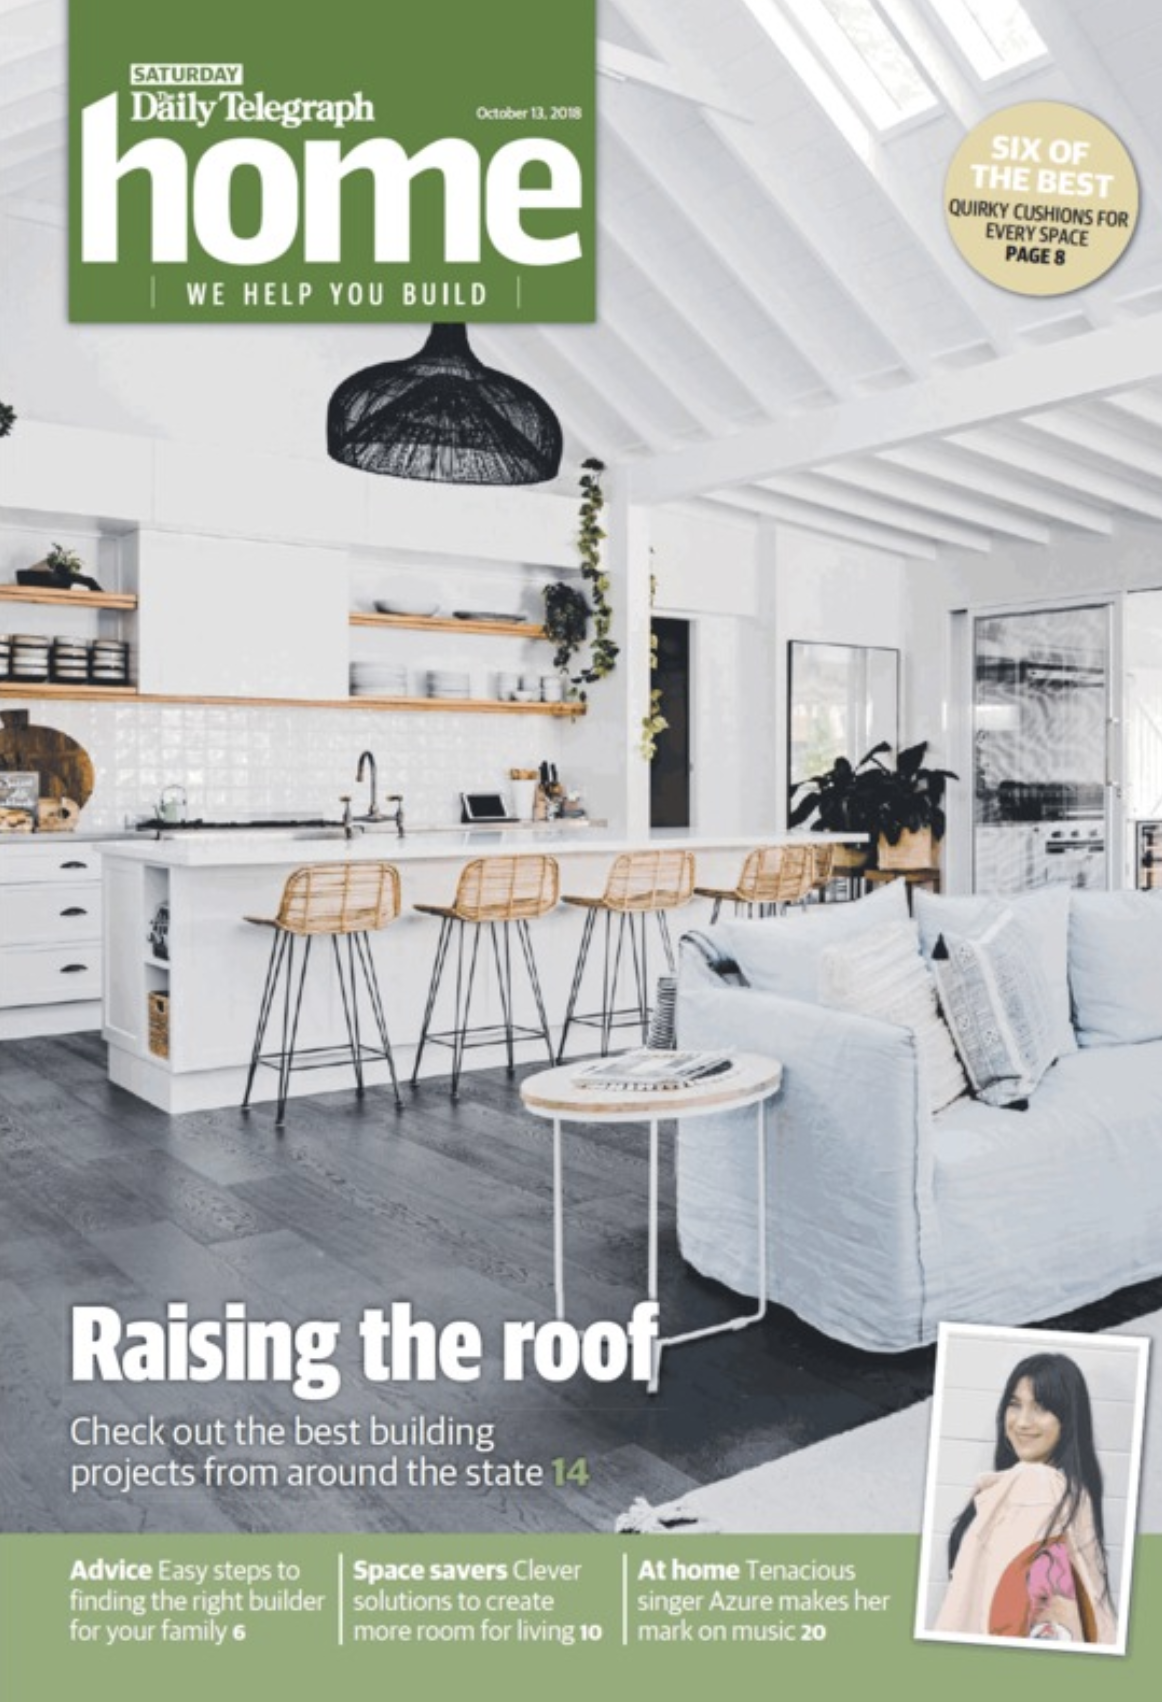 """The Daily Telegraph - """"BAM Constructions transformed one of the oldest farmhouses in Gerringong and transformed it into a luxurious guesthouse without losing its charm.""""Click here to read the full article"""